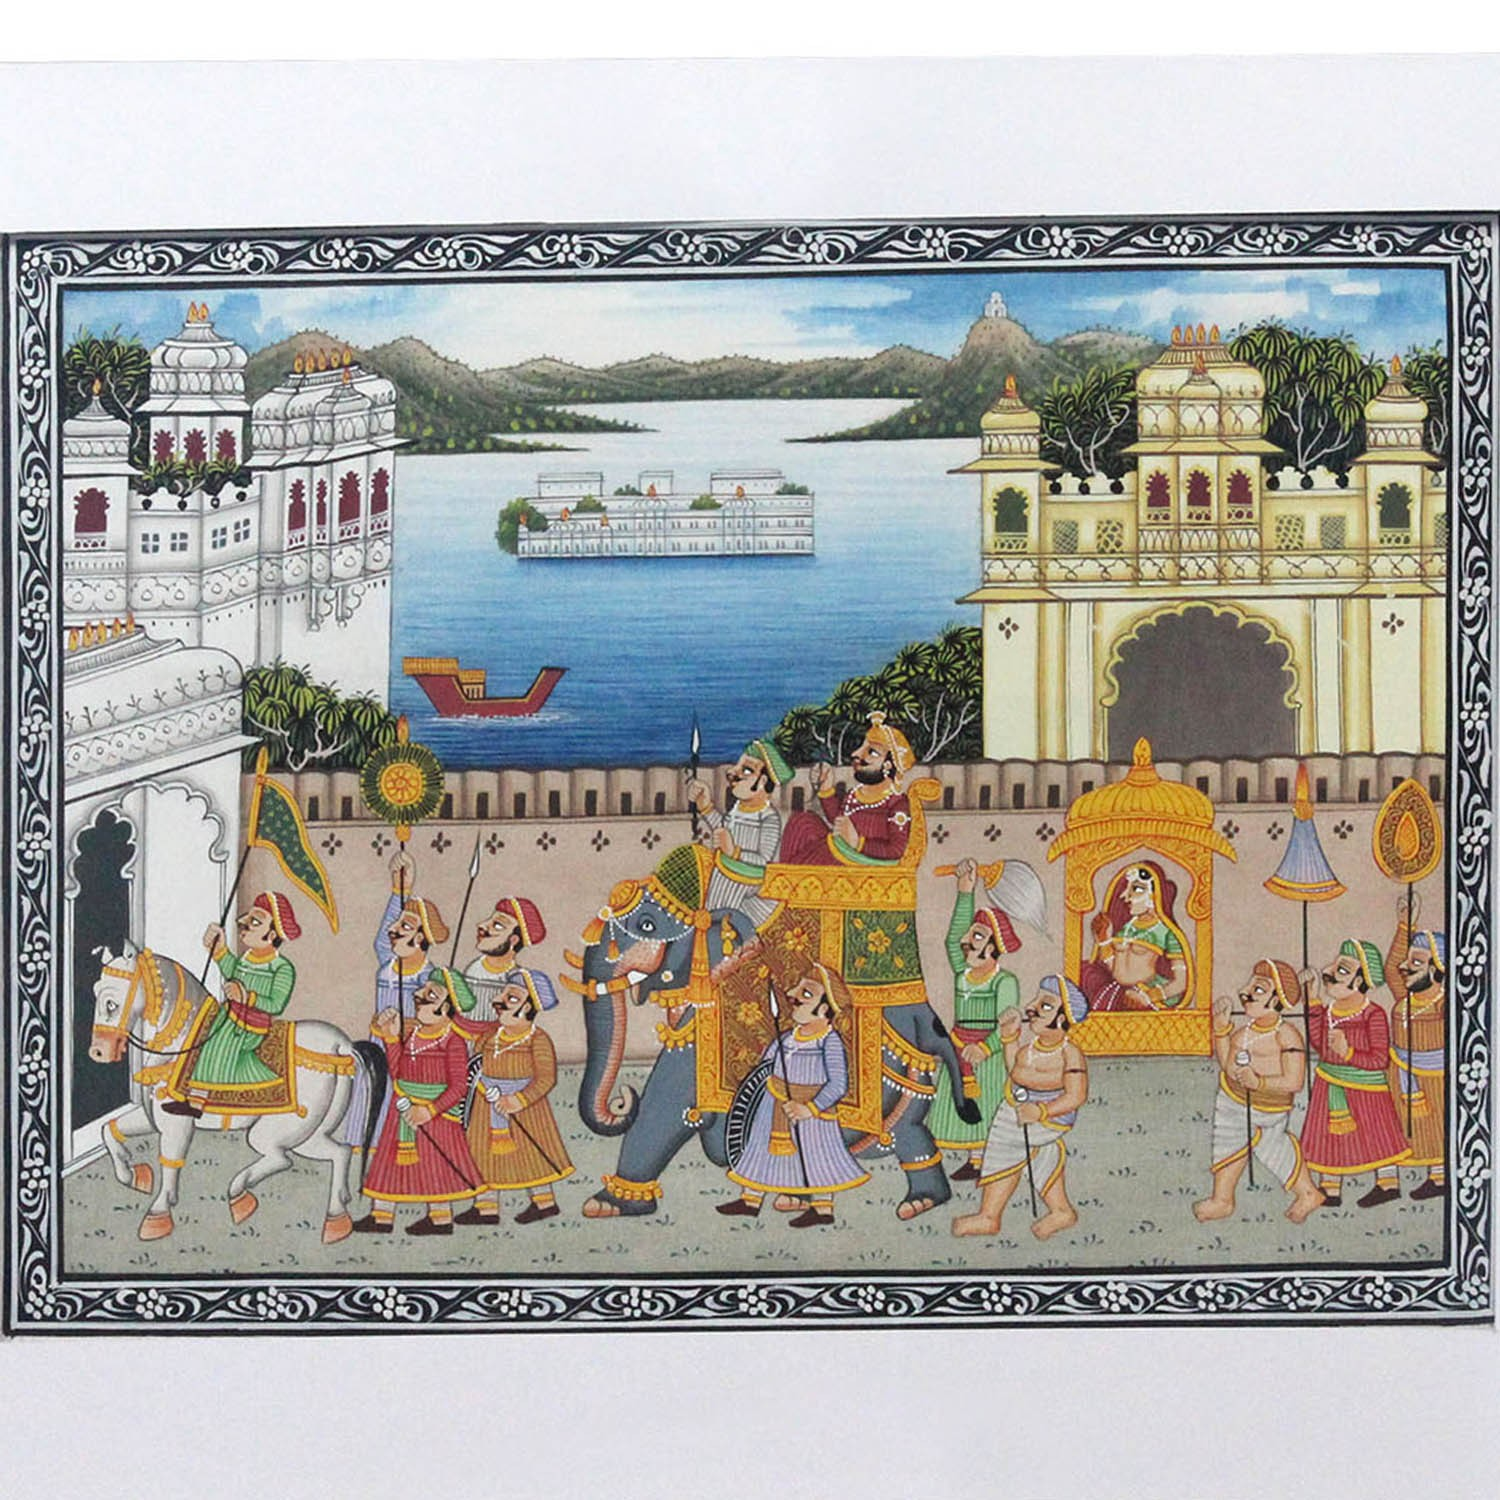 Miniature Painting (Udaipur place procession)